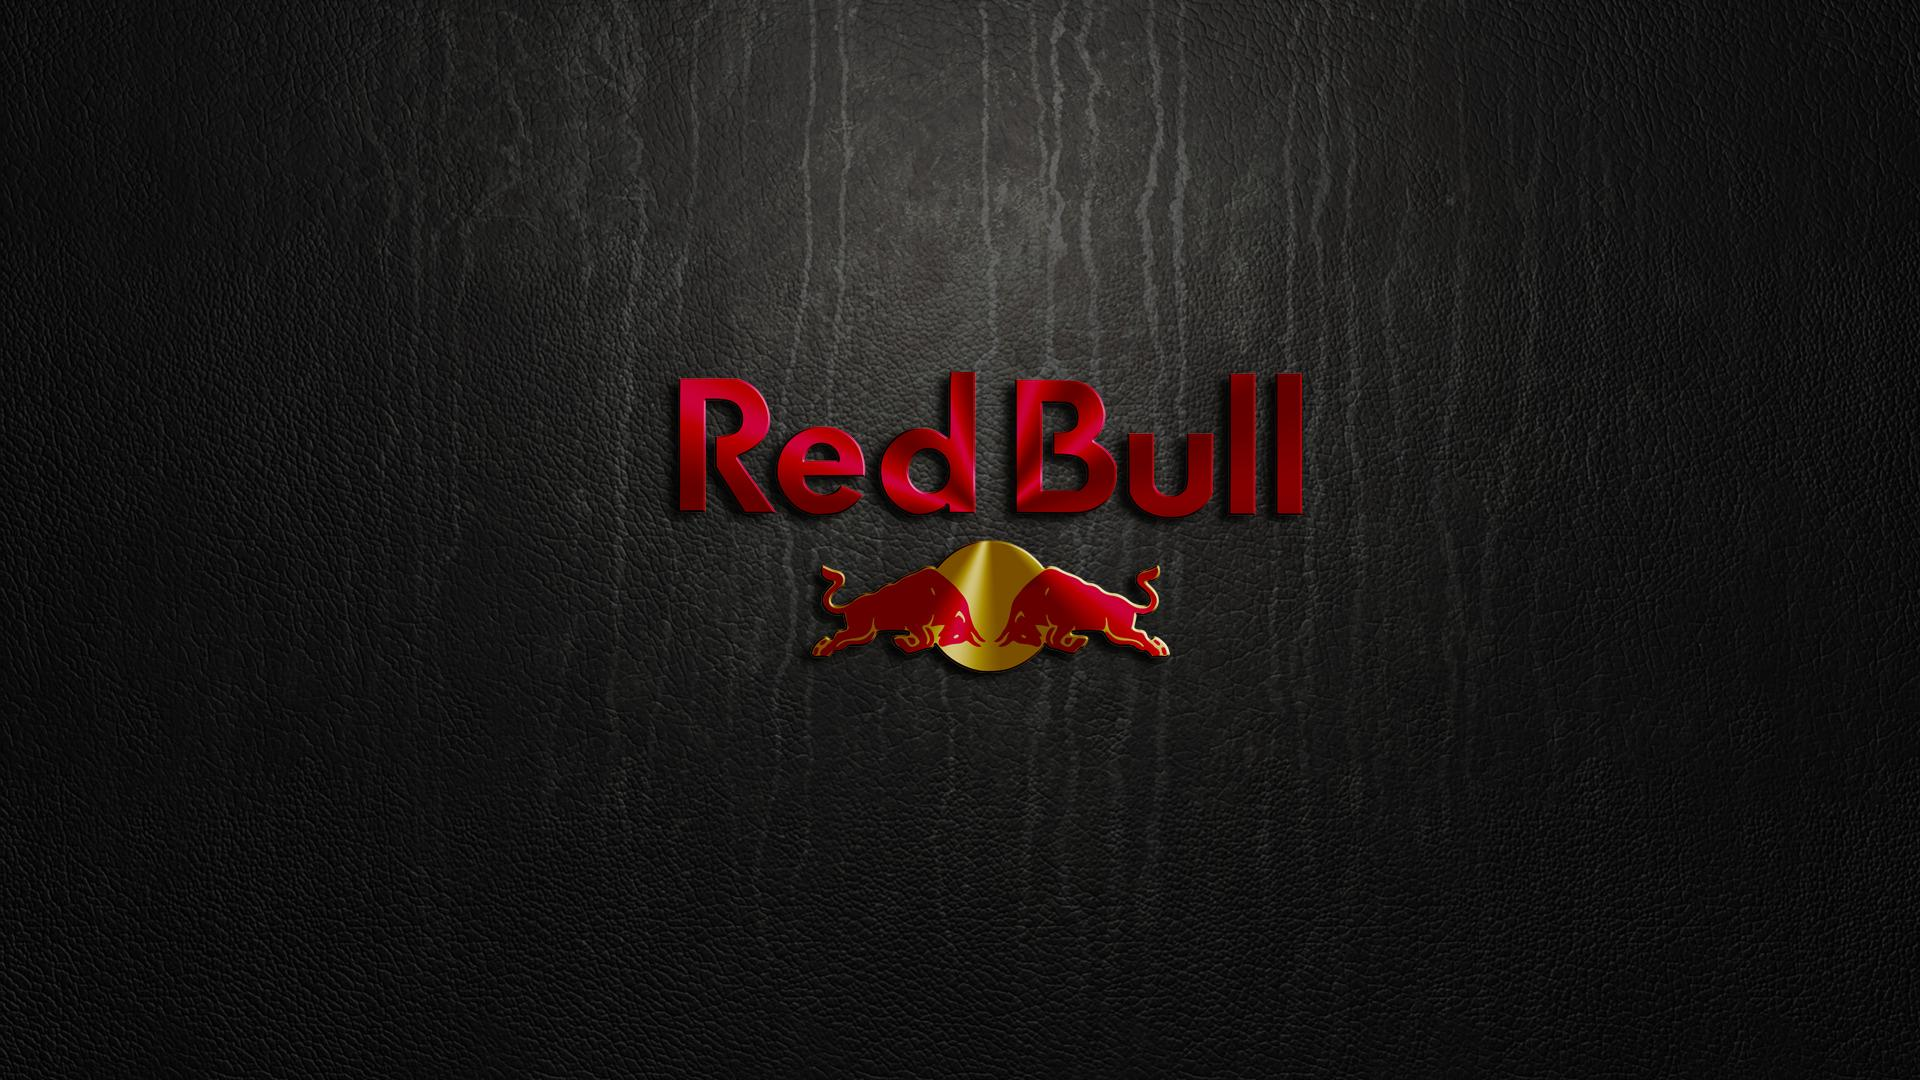 Red Bull Wallpapers  Android Apps on Google Play 1920x1080